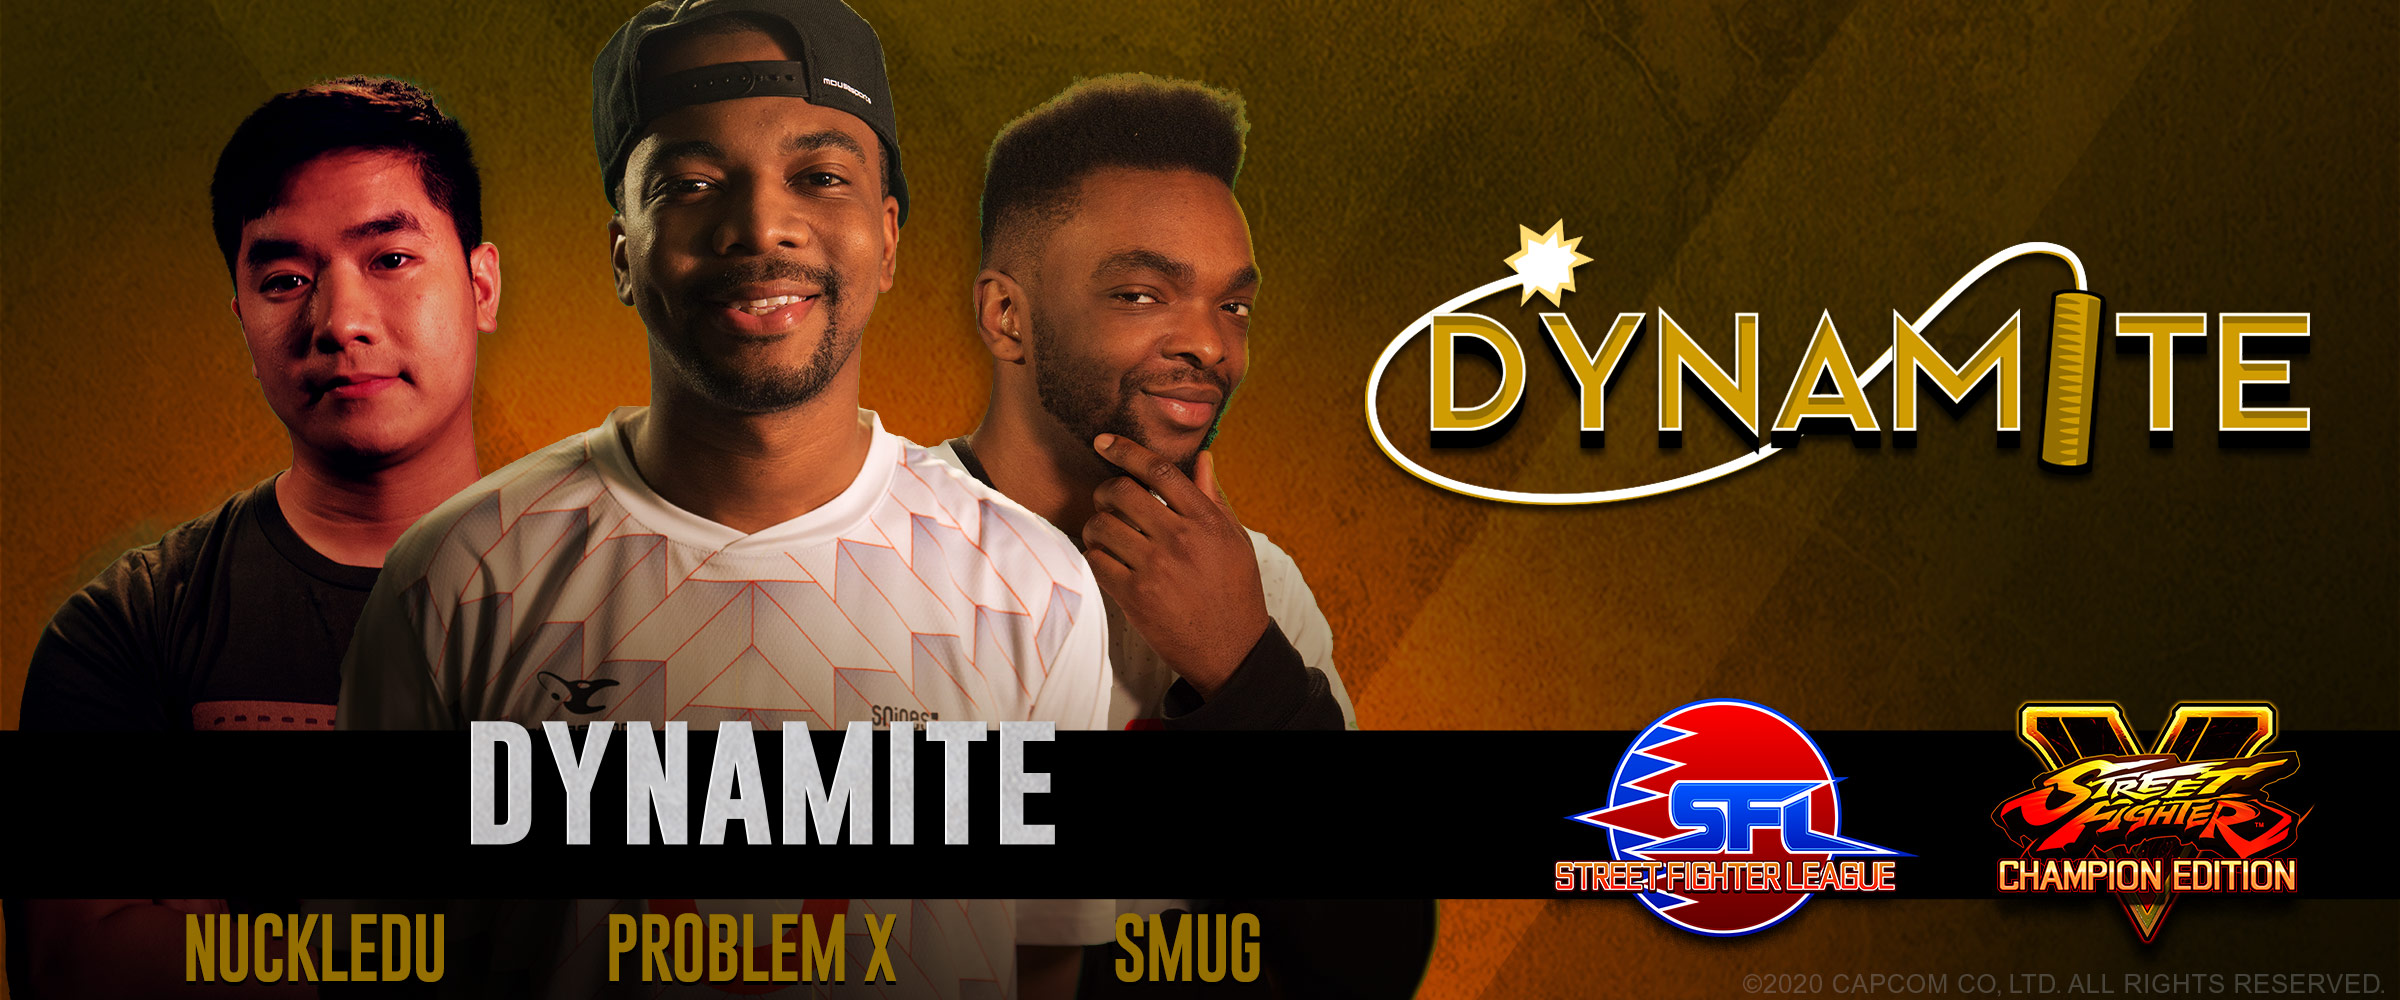 Introducing Team Dynamite